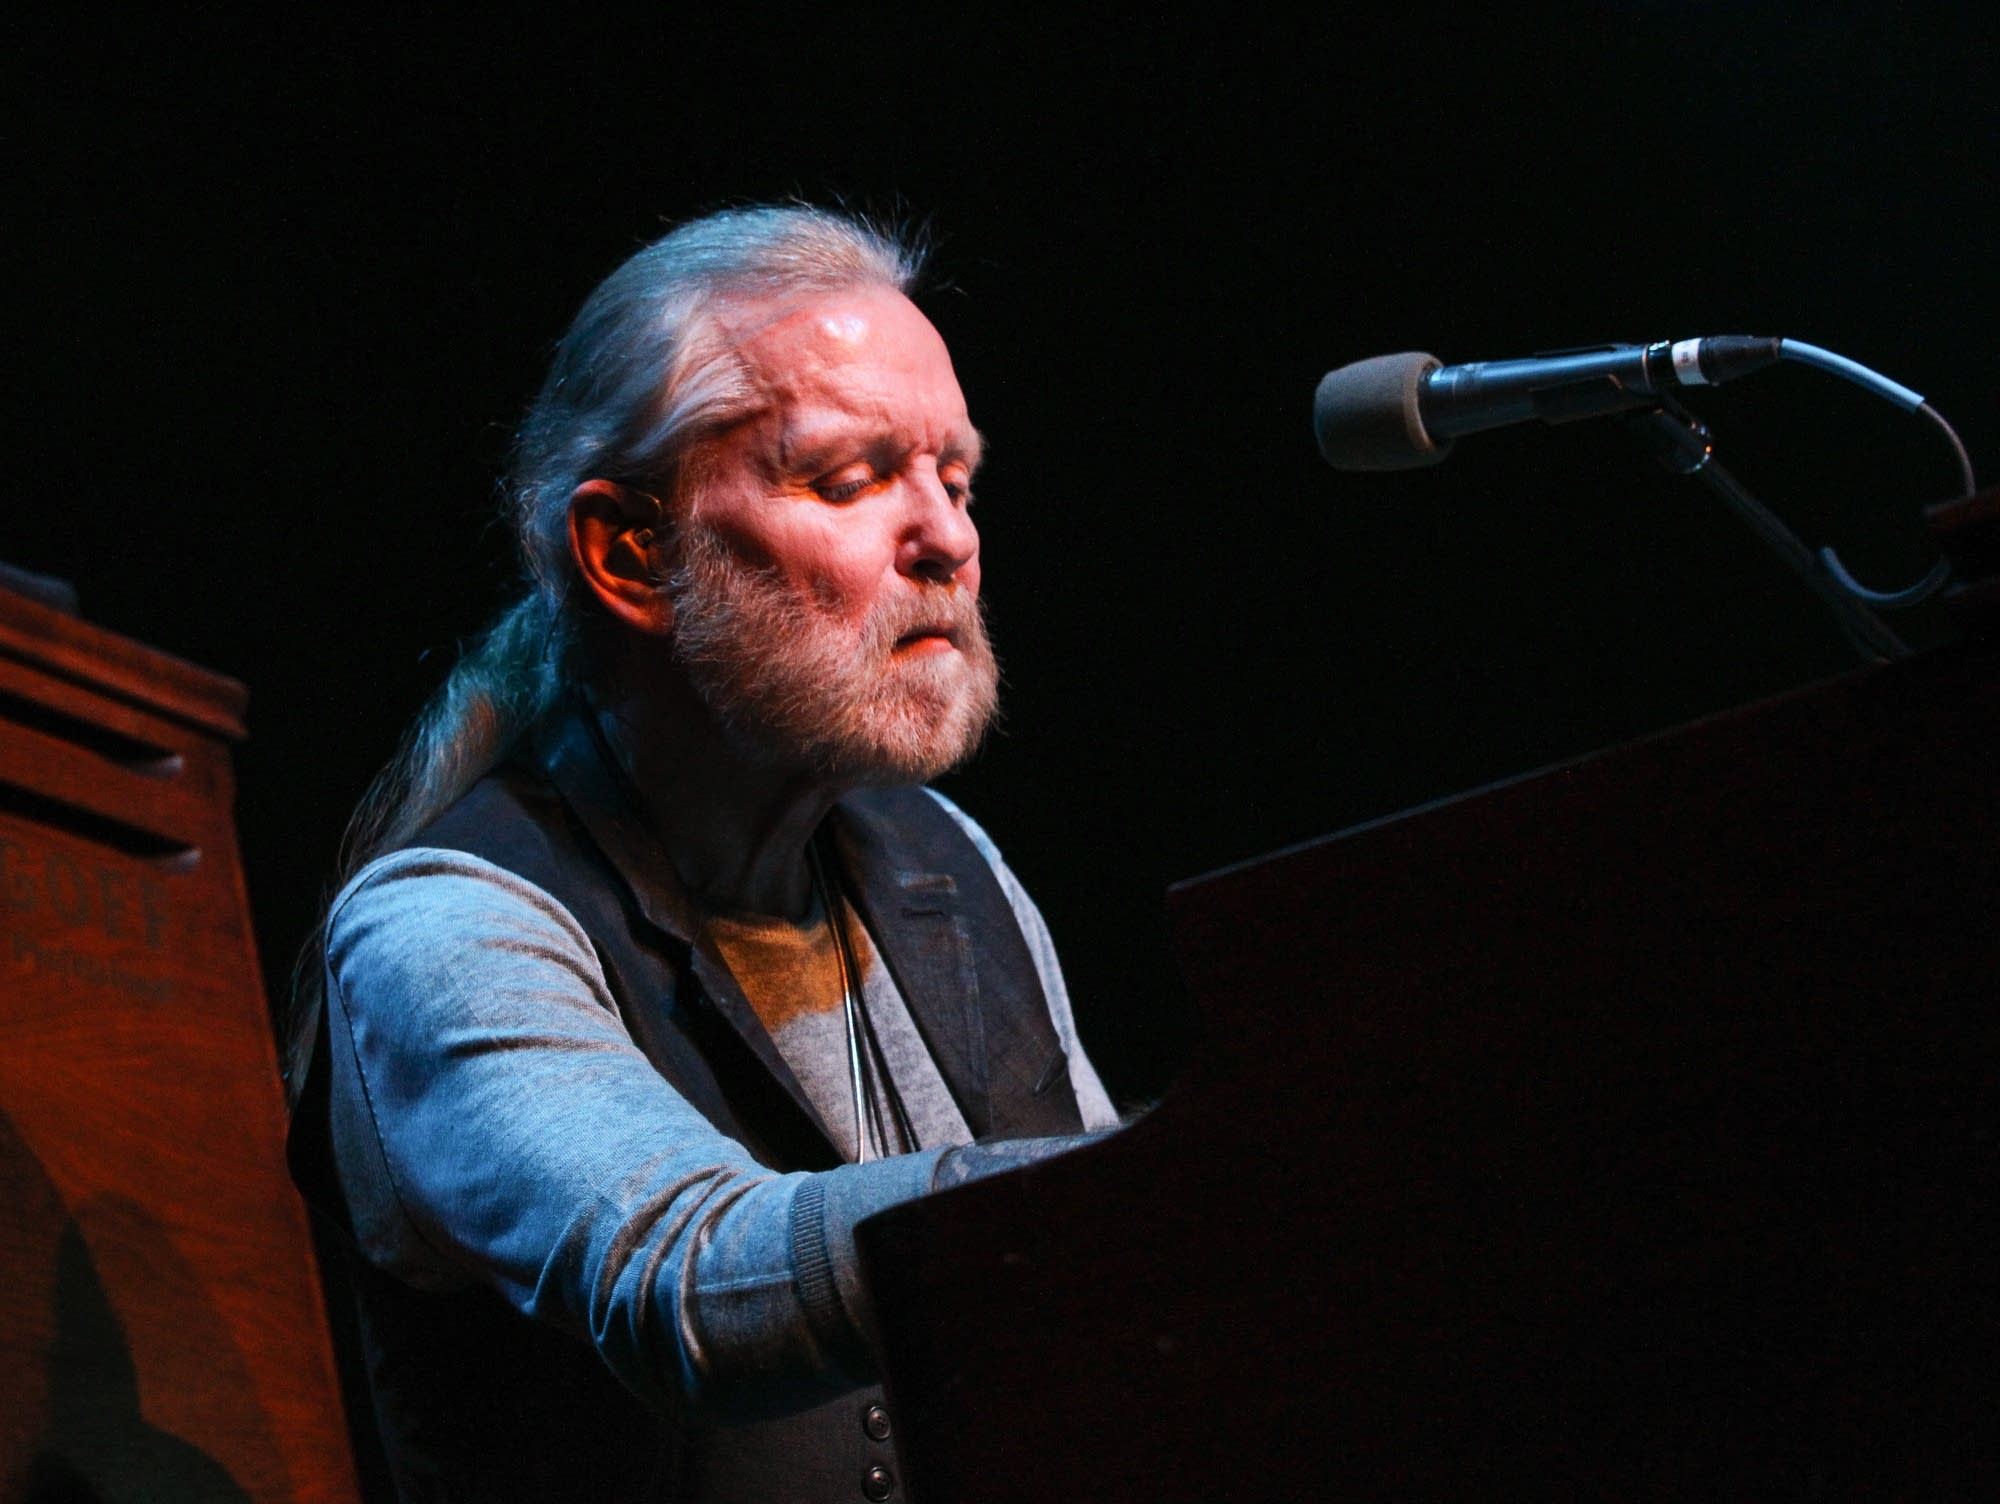 Gregg Allman performs at the Ryman Auditorium in Nashville, 2015